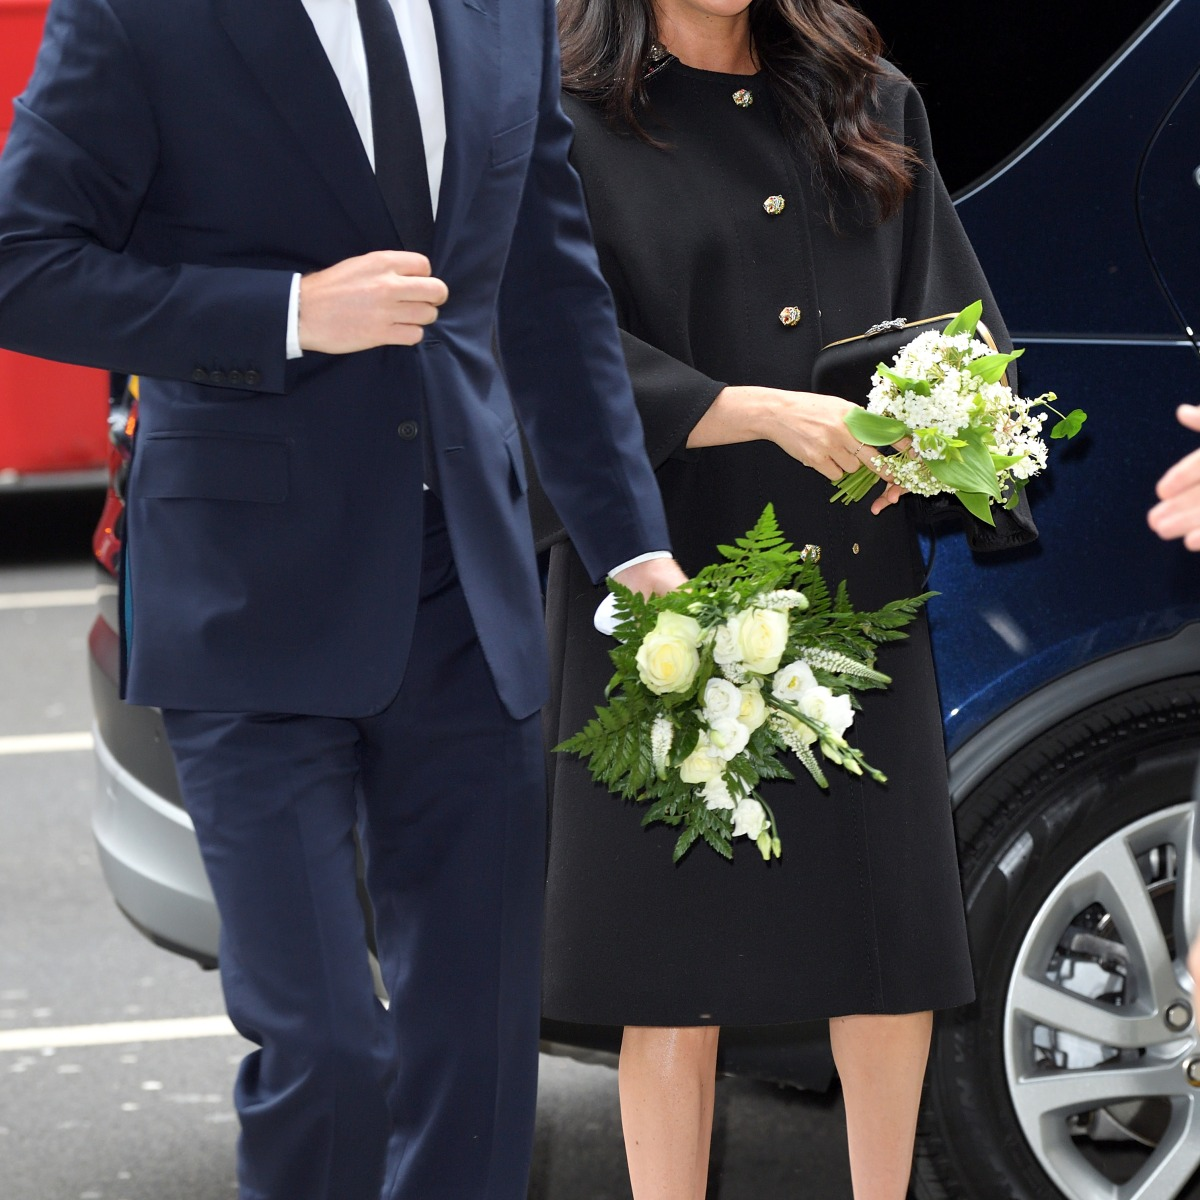 6d506a9c9bbf Meghan Markle's Maternity Style: See All Her Best Baby Bump Looks!